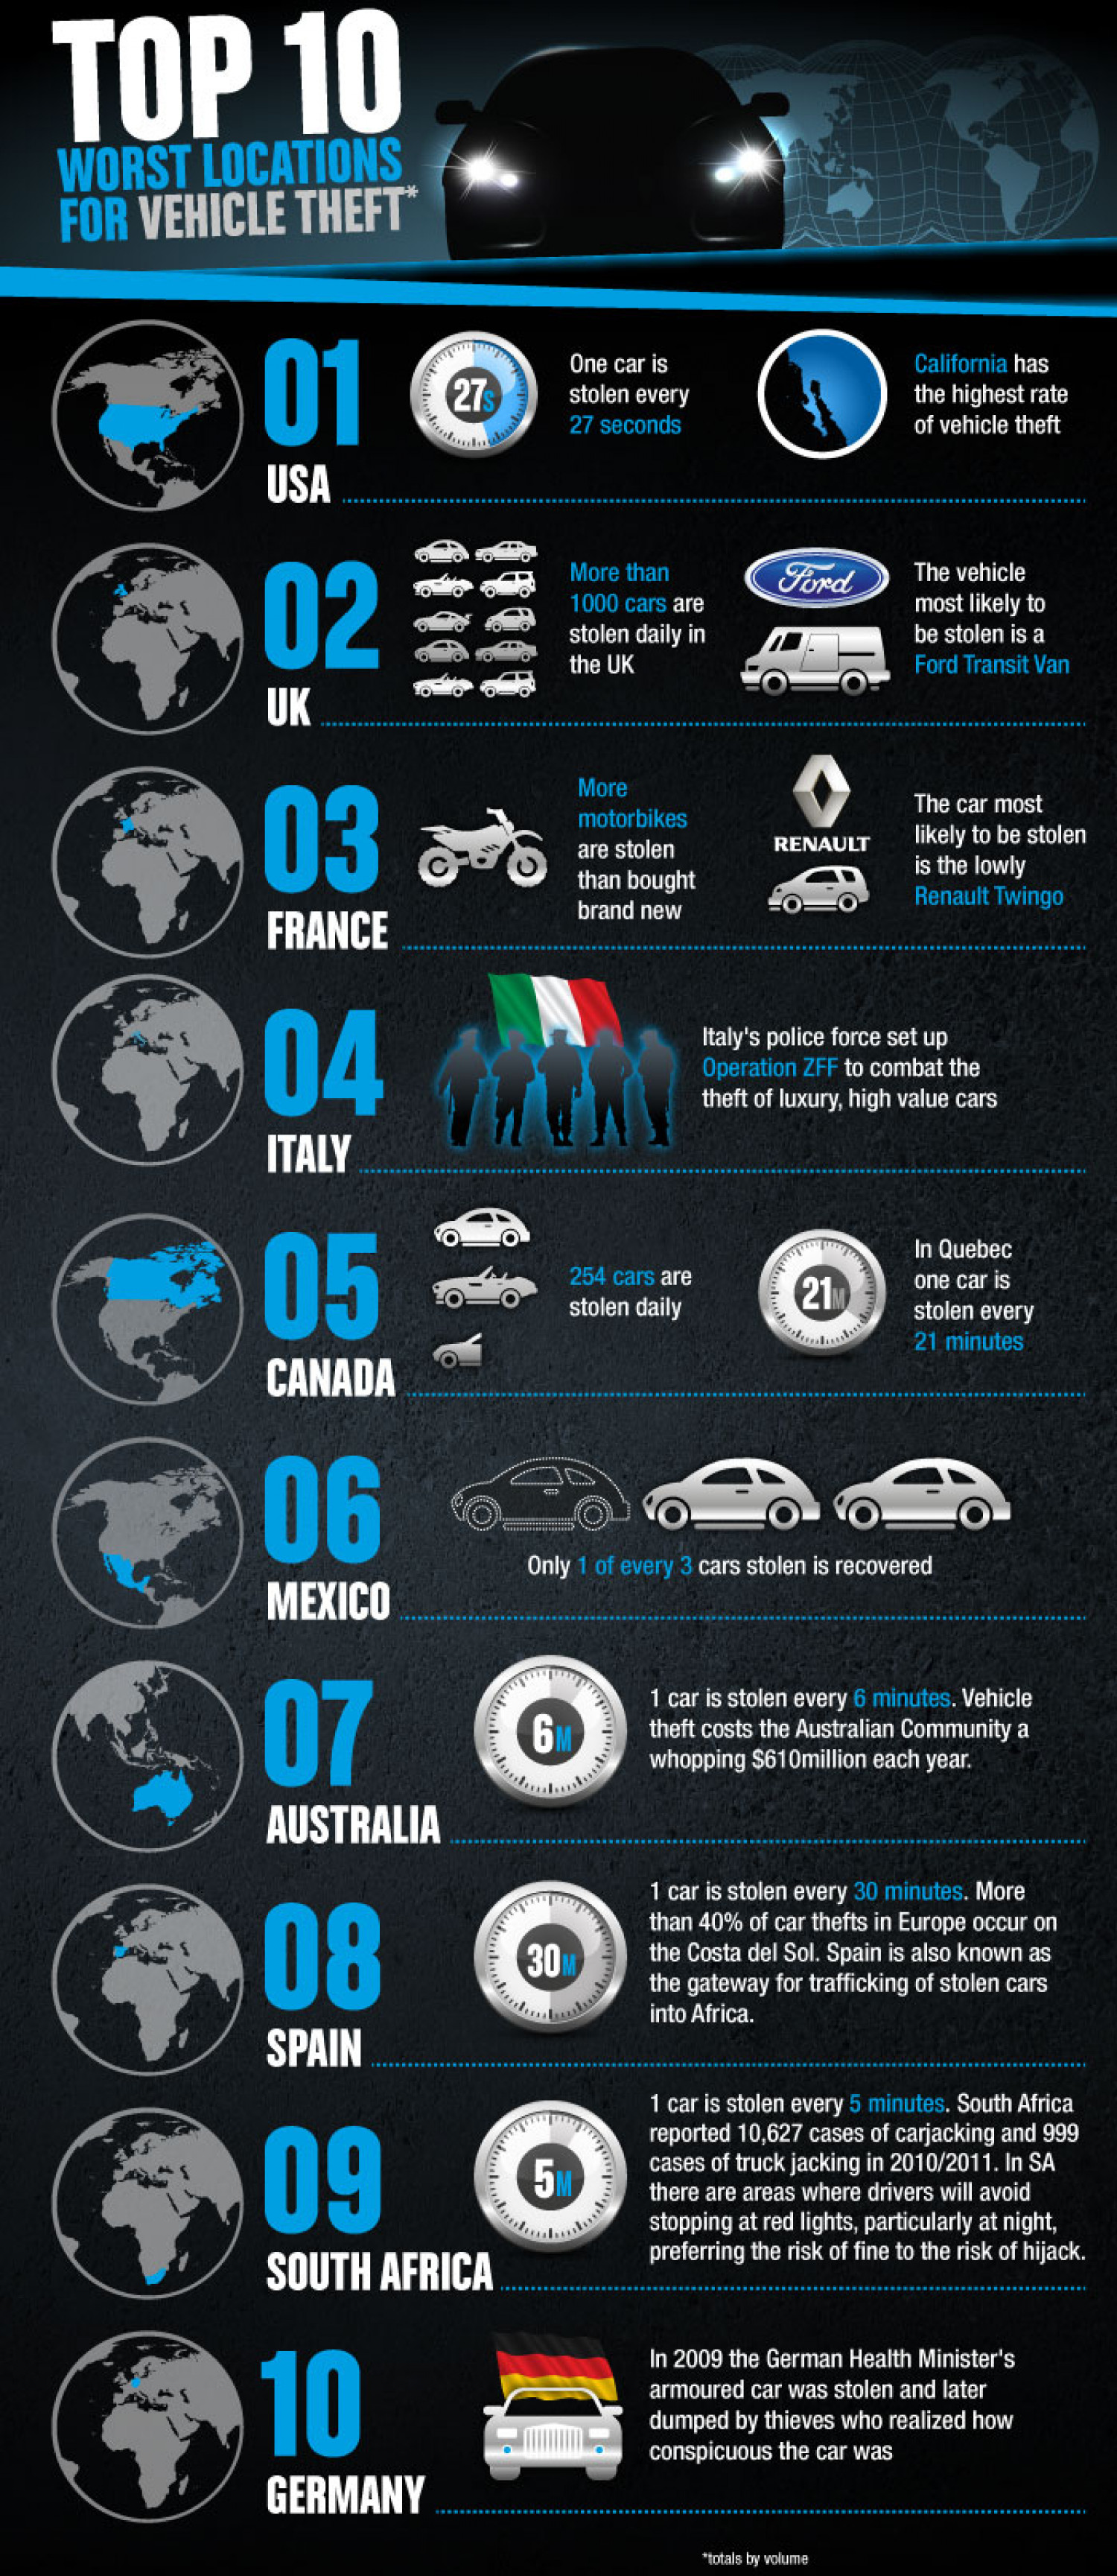 Top 10 Worst Locations for Vehicle Theft Infographic